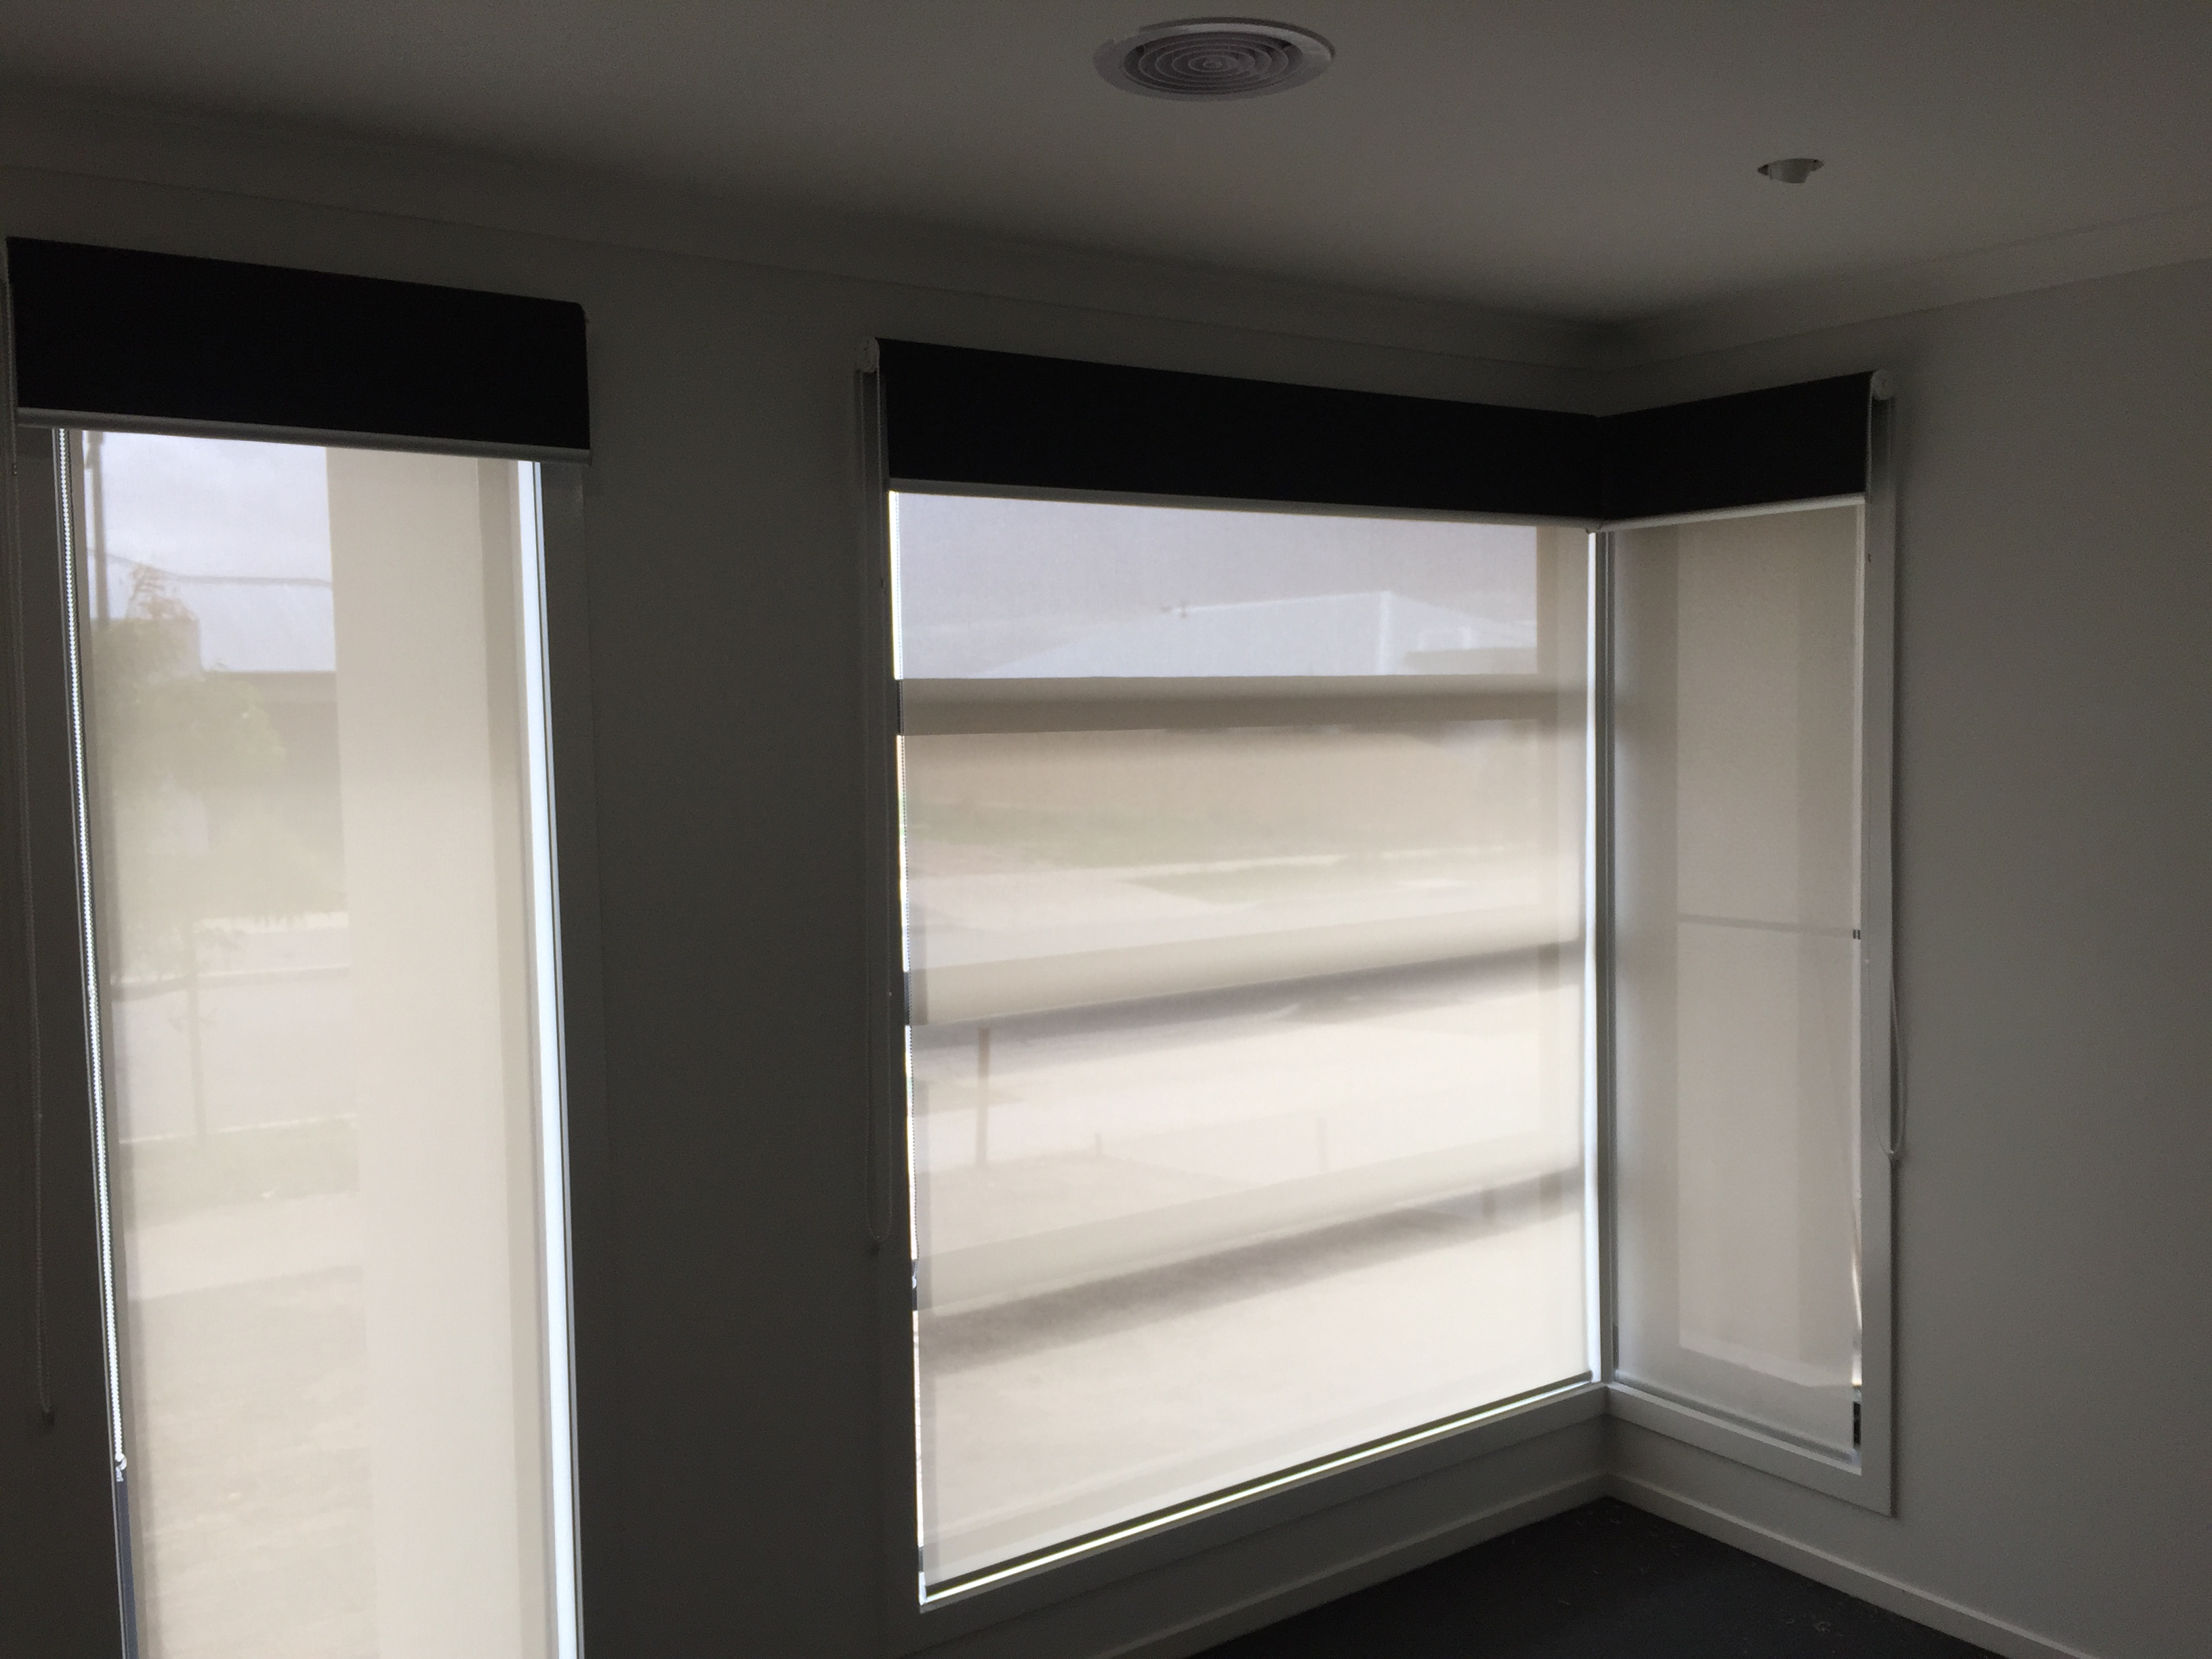 roller soluna not sun is beautifulwindows pin shades pearl blocked view but beautiful com budget the norman blinds thanks to